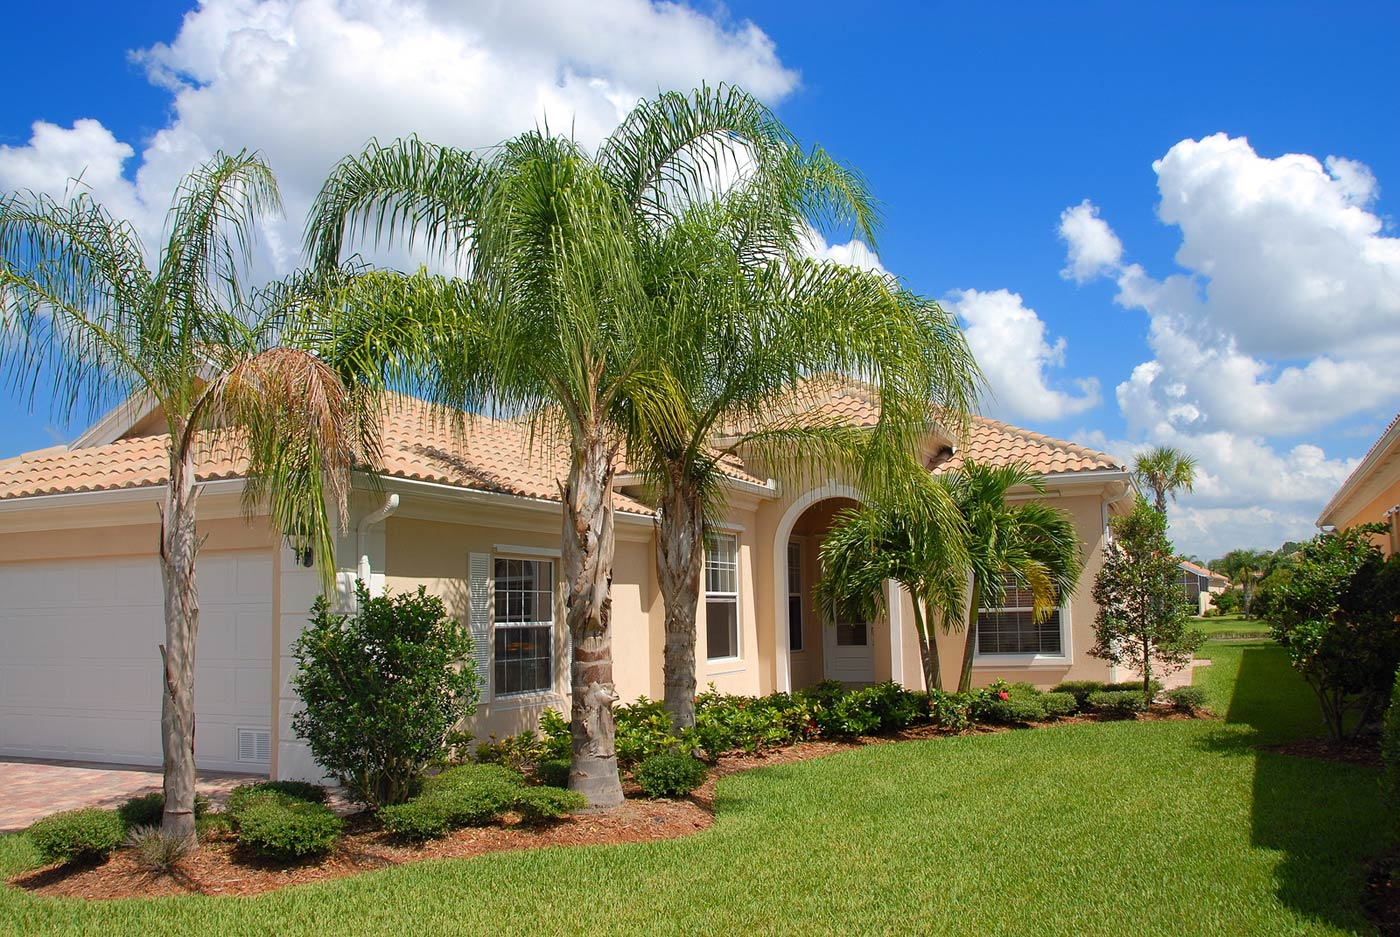 Deltona property management in FL